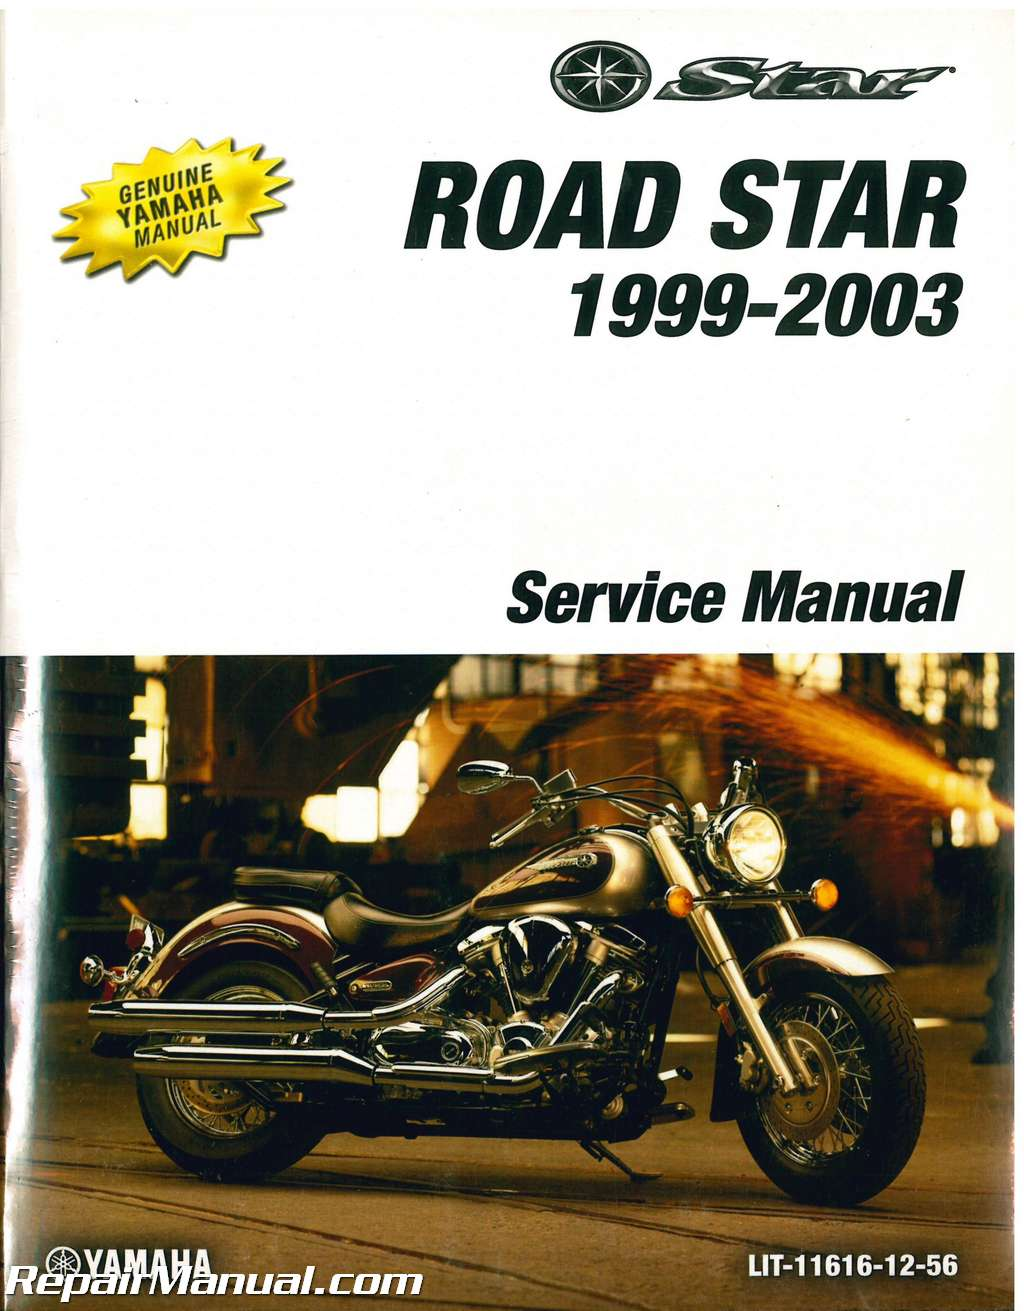 1999 suzuki intruder 1500 wiring diagram genie intellicode 2003 yamaha road star free for you xv1600 motorcycle service manual rh repairmanual com diagrams